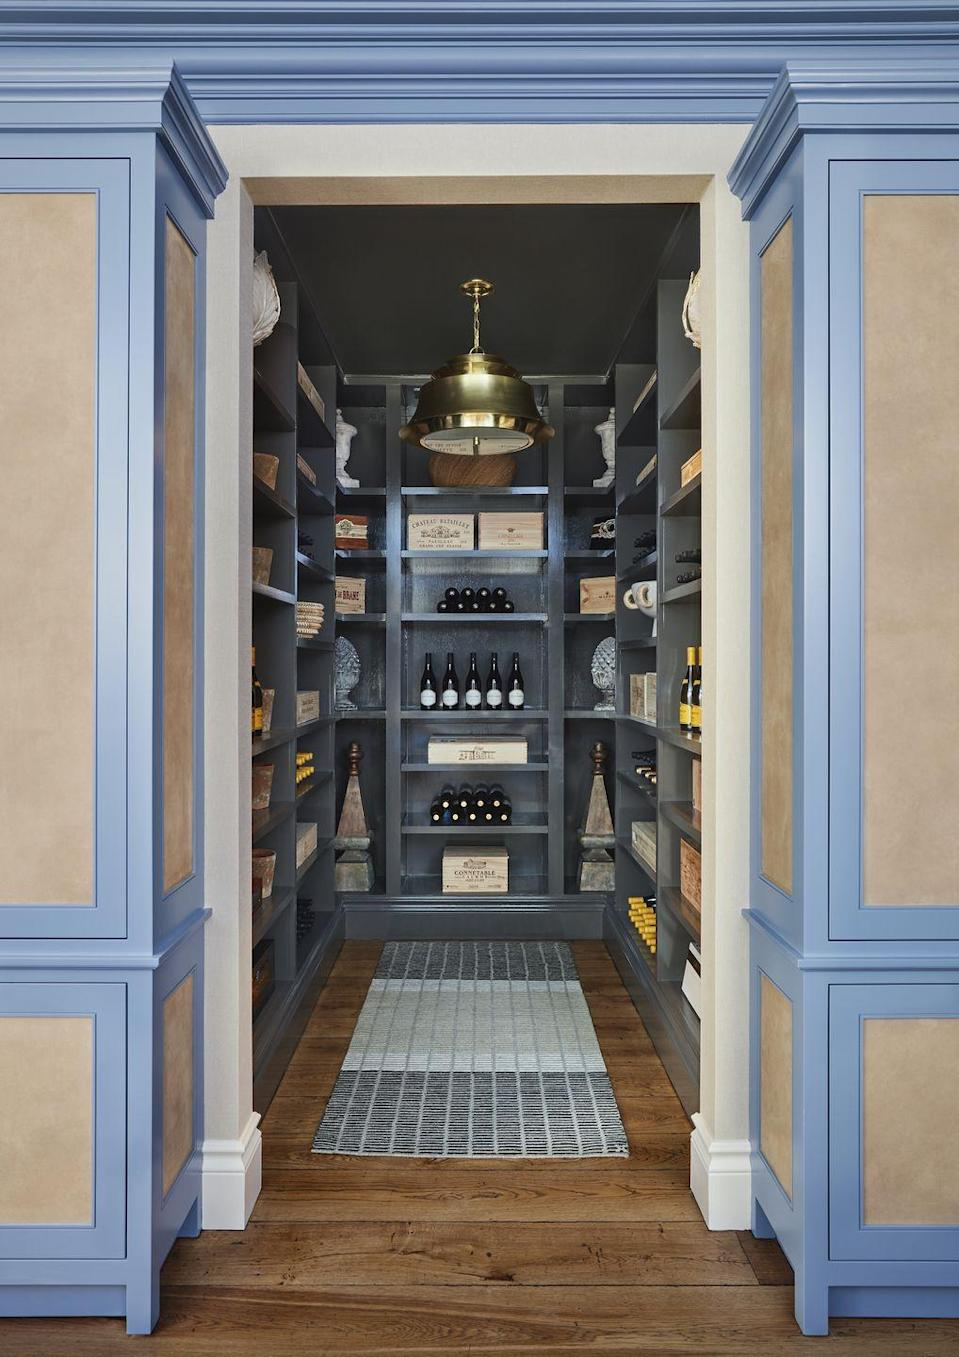 "<p>Designer <a href=""http://sarahblankdesignstudio.com/"" rel=""nofollow noopener"" target=""_blank"" data-ylk=""slk:Sarah Blank"" class=""link rapid-noclick-resp"">Sarah Blank</a> repurposed the pantry of the <a href=""https://www.veranda.com/decorating-ideas/a30641052/kips-bay-decorator-show-house-palm-beach-2020/"" rel=""nofollow noopener"" target=""_blank"" data-ylk=""slk:Kips Bay Palm Beach Show House"" class=""link rapid-noclick-resp"">Kips Bay Palm Beach Show House</a> as an open wine bar and tasting room. The stylish wine racks and stunning brass pendant light (<a href=""https://www.curreyandcompany.com/"" rel=""nofollow noopener"" target=""_blank"" data-ylk=""slk:Currey & Co."" class=""link rapid-noclick-resp"">Currey & Co.</a>) beckons guests to come in and enjoy a glass. </p>"